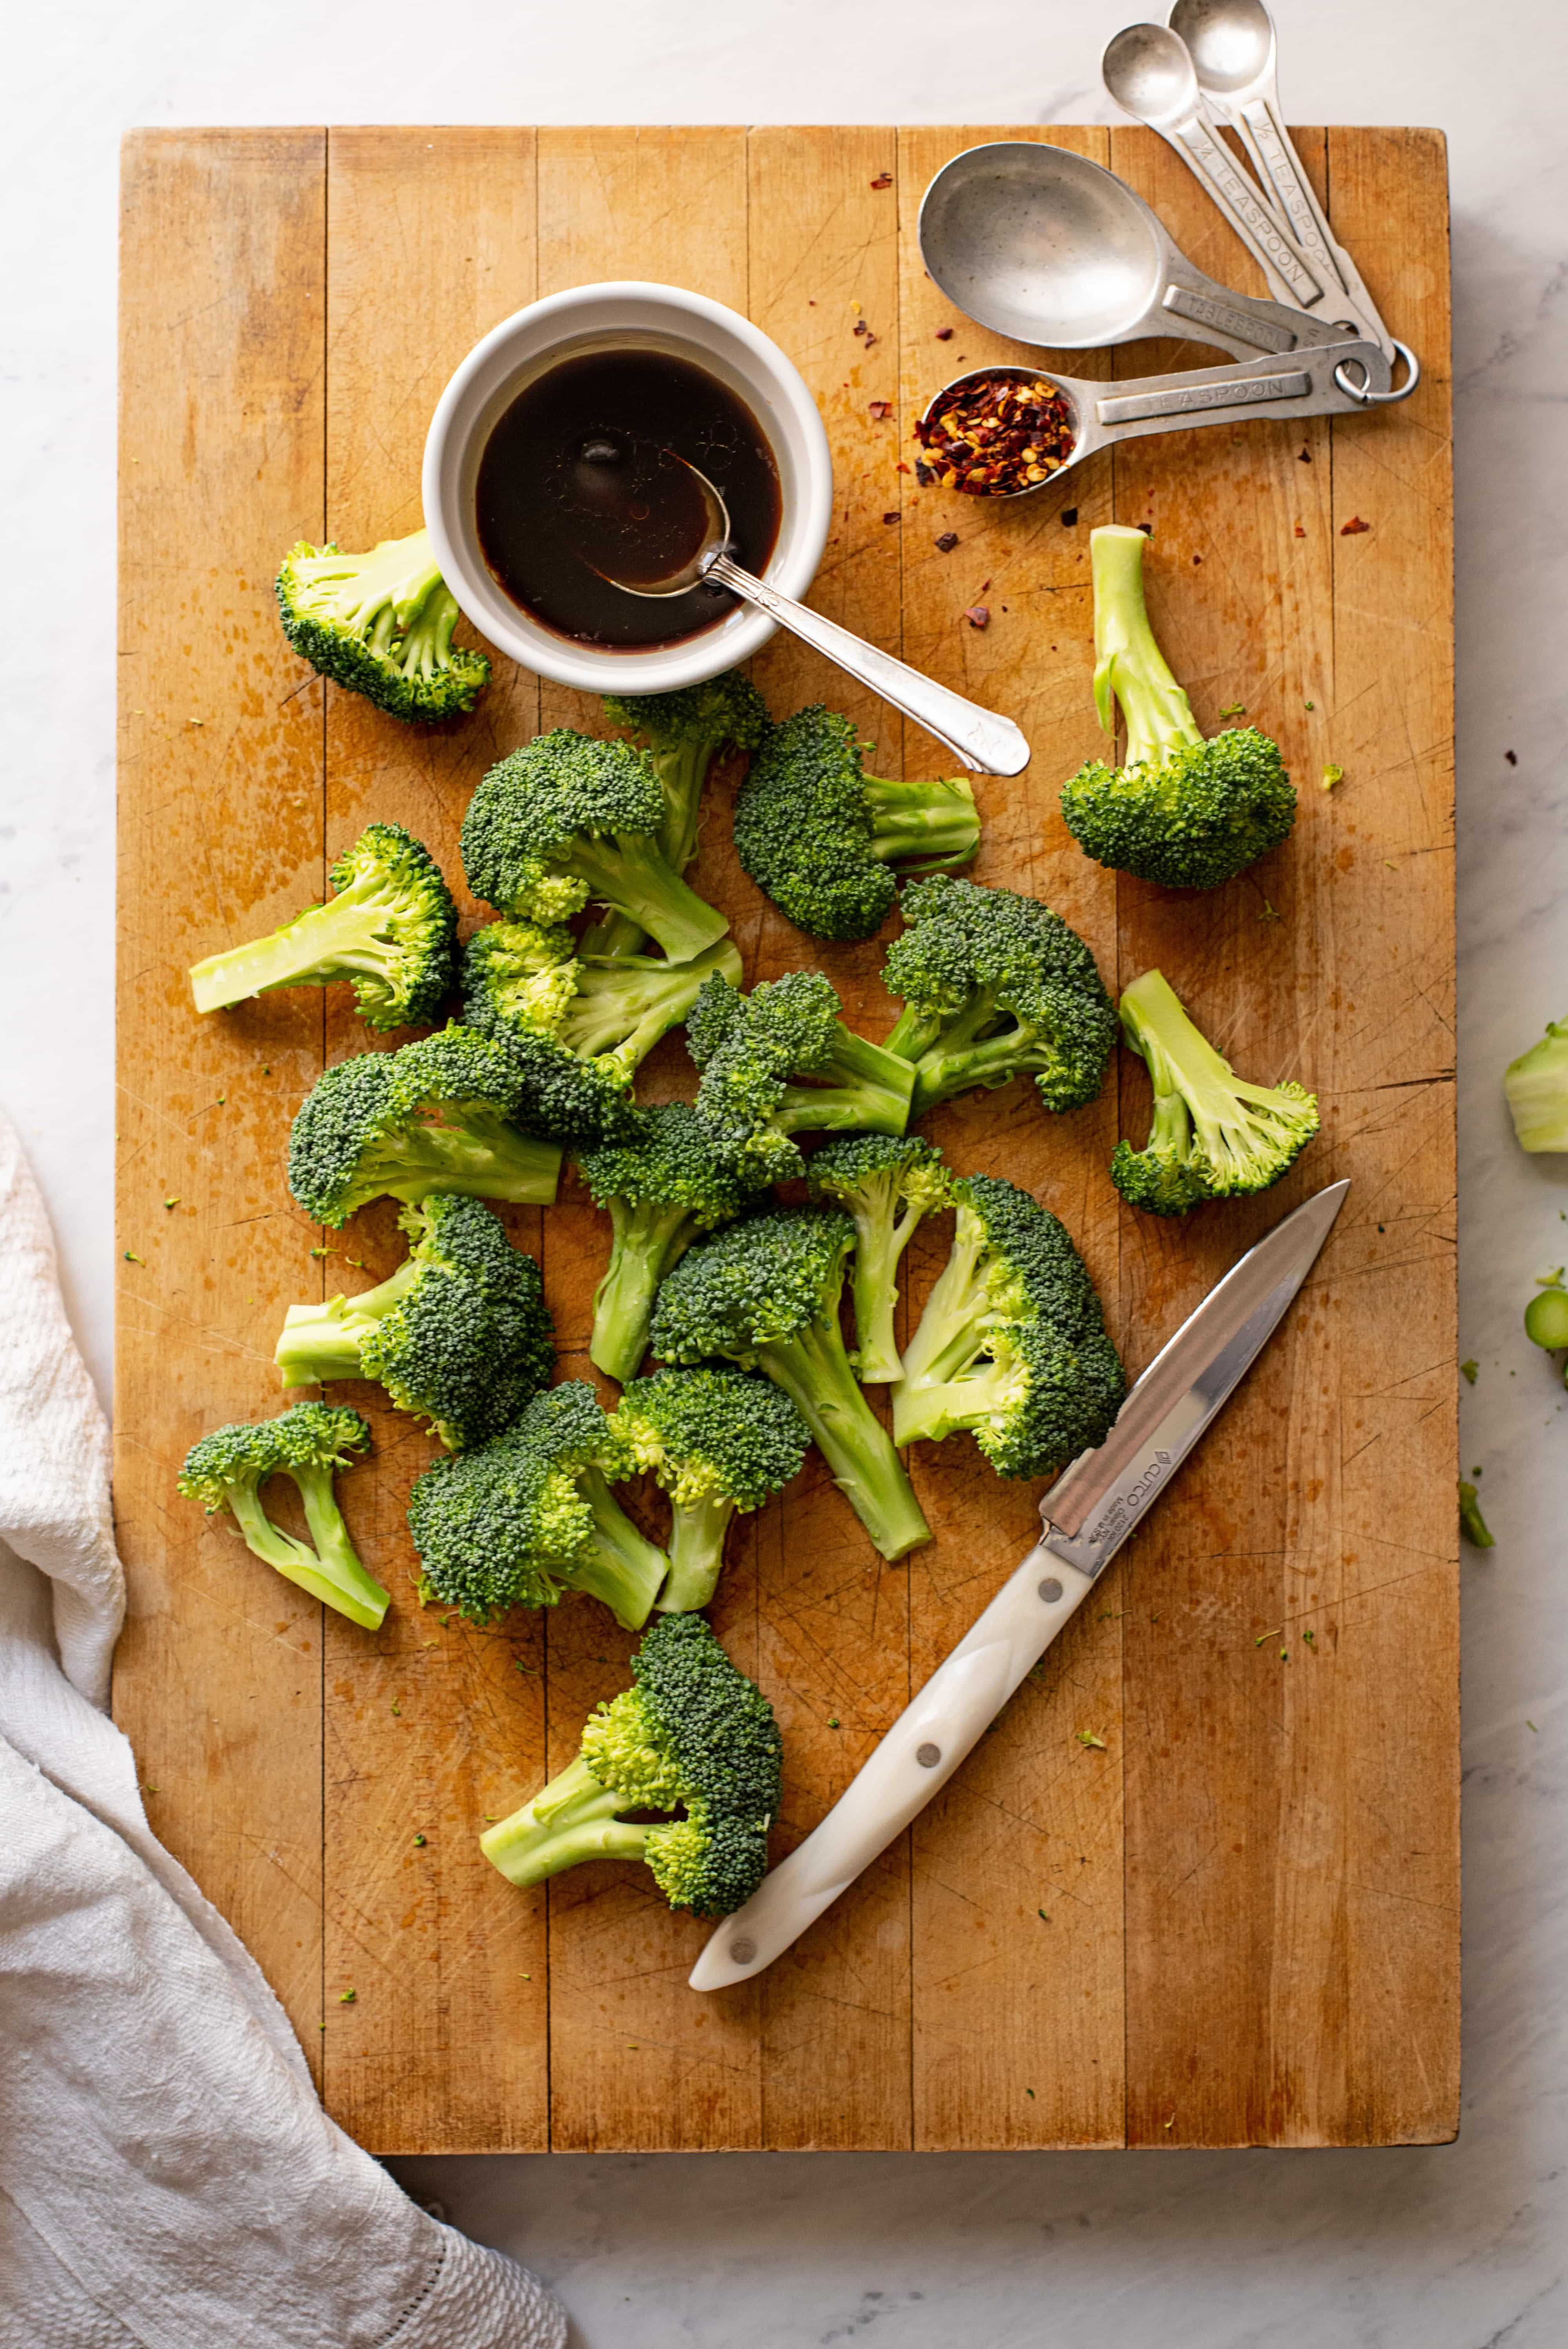 Roasted Broccoli with Peanut Noodles 6050 1 4000x5992 - Roasted Broccoli with Peanut Noodles